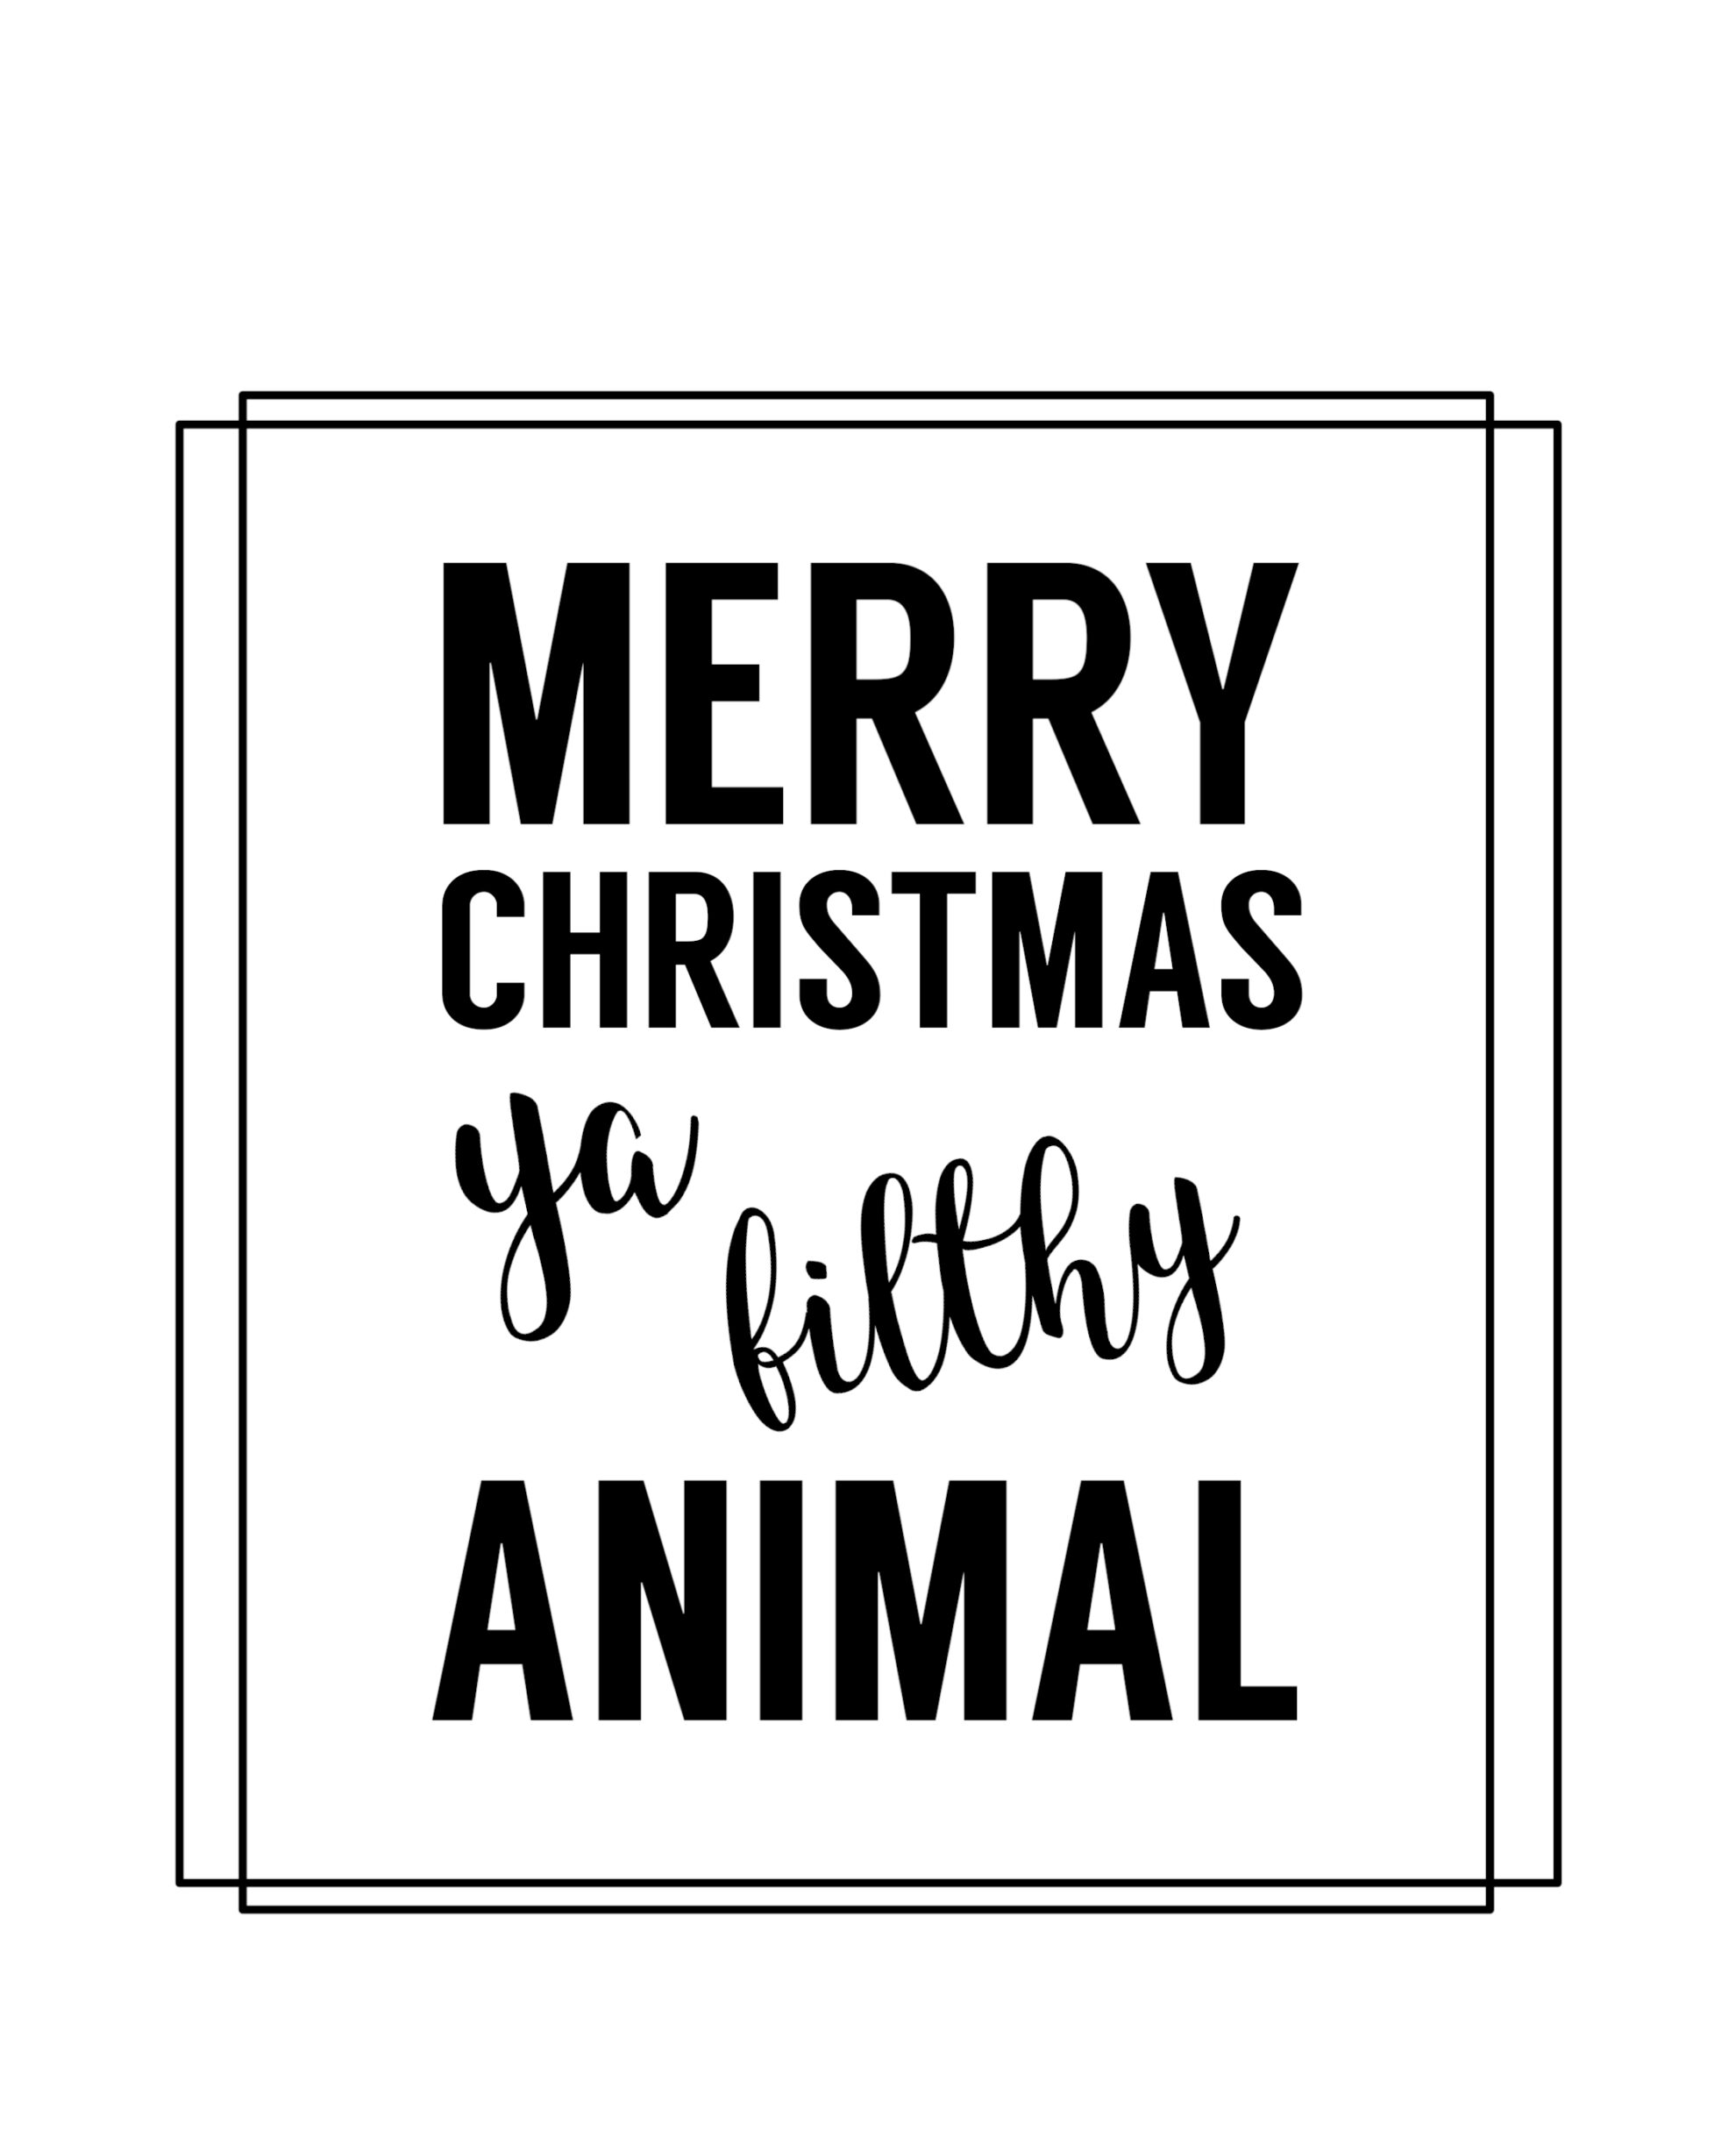 click the following links to print the merry christmas ya filthy animal card free printable - Merry Christmas Ya Filthy Animal